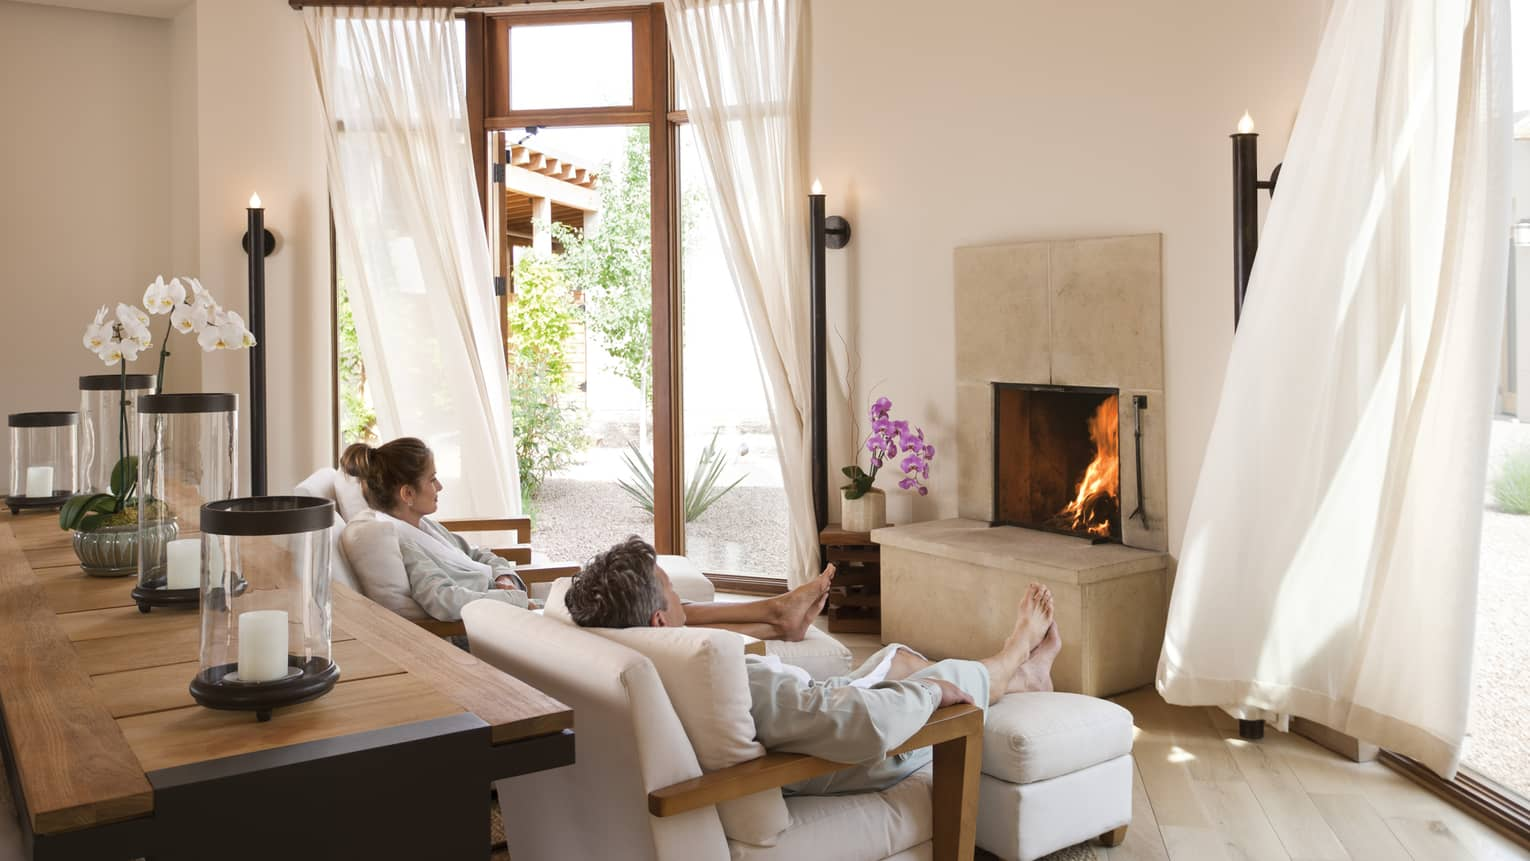 Man, woman in white bathrobes relax on spa armchairs by fireplace, white curtains